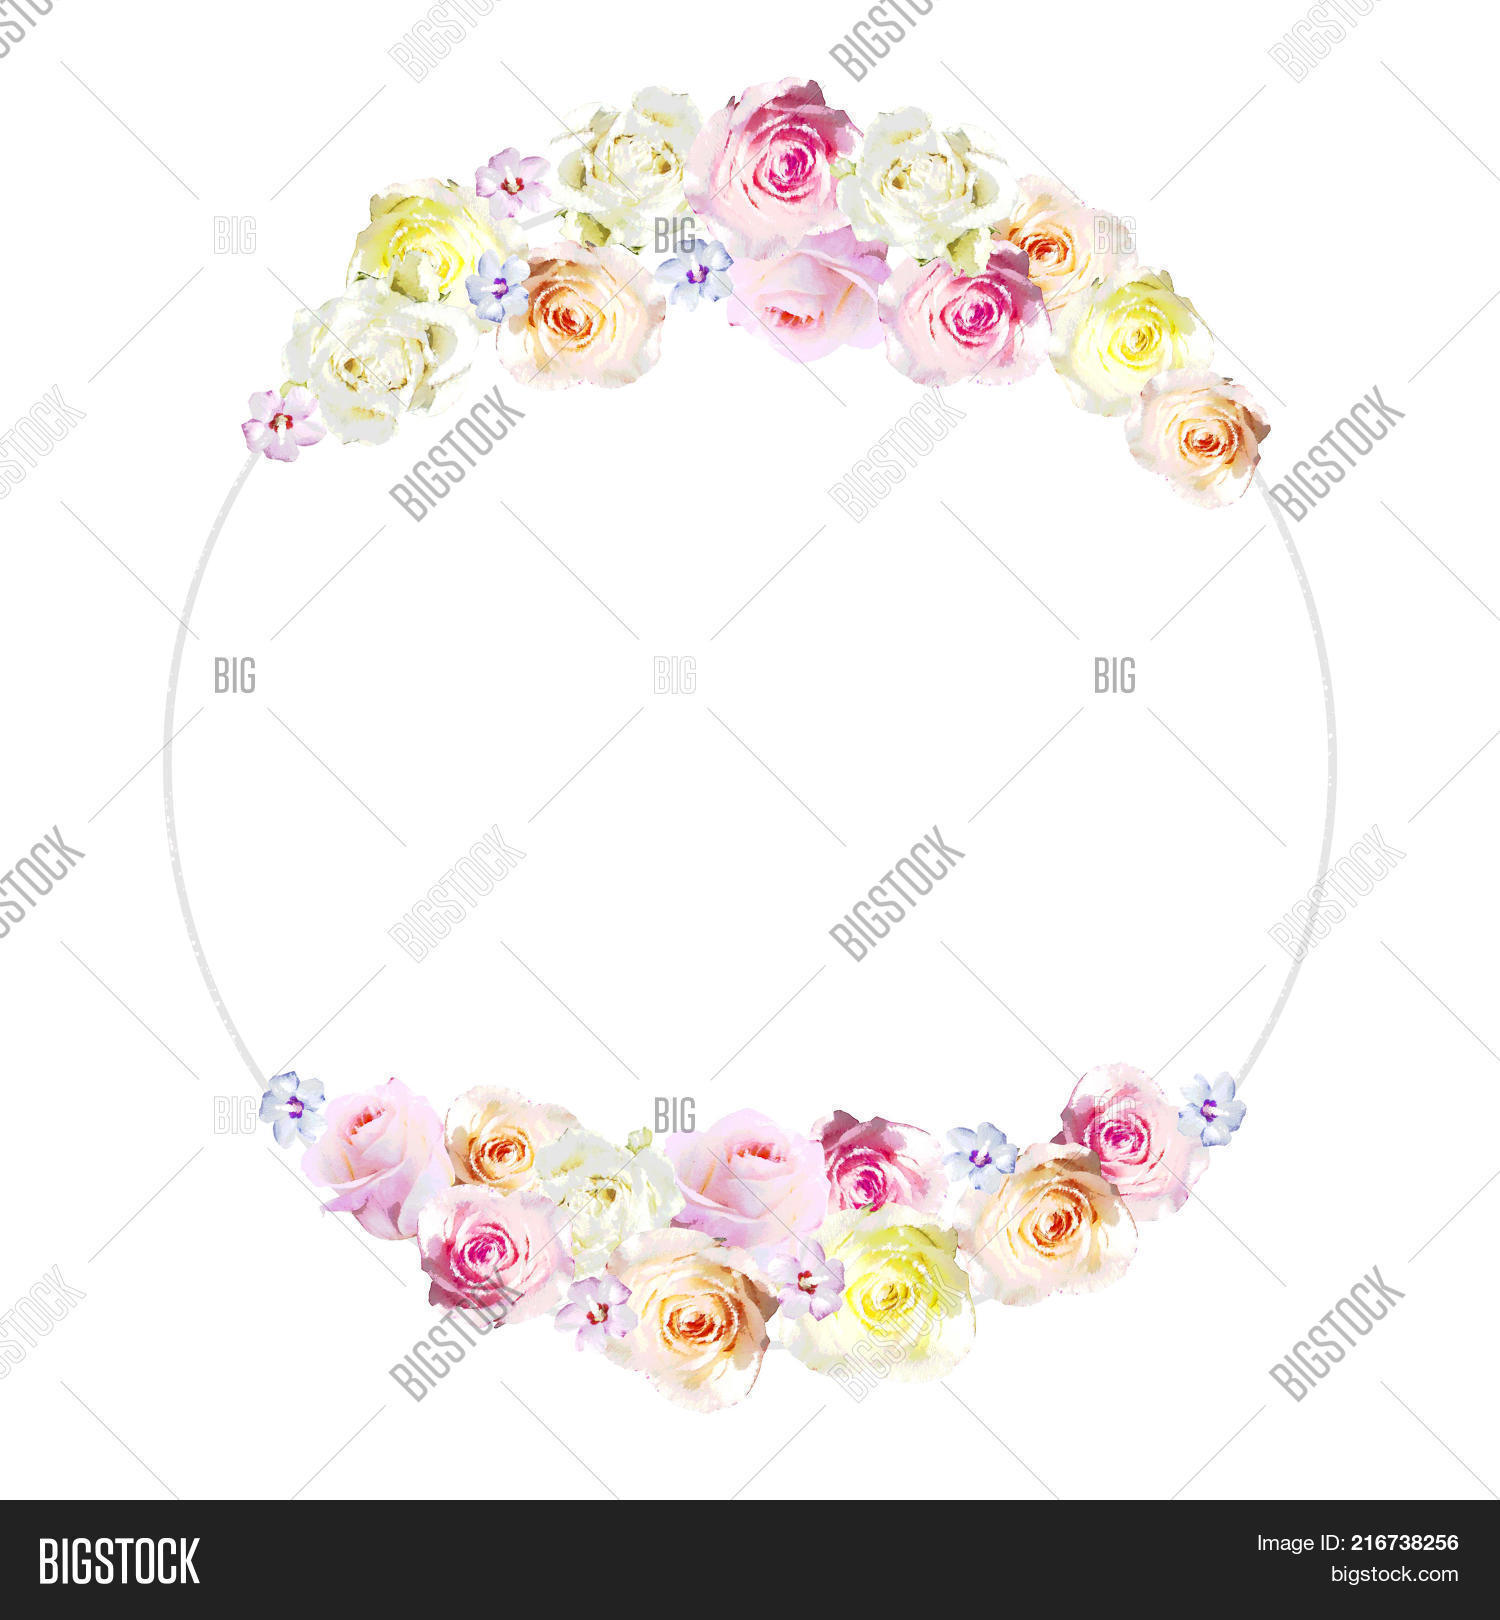 Round Frame Beautiful Image Photo Free Trial Bigstock